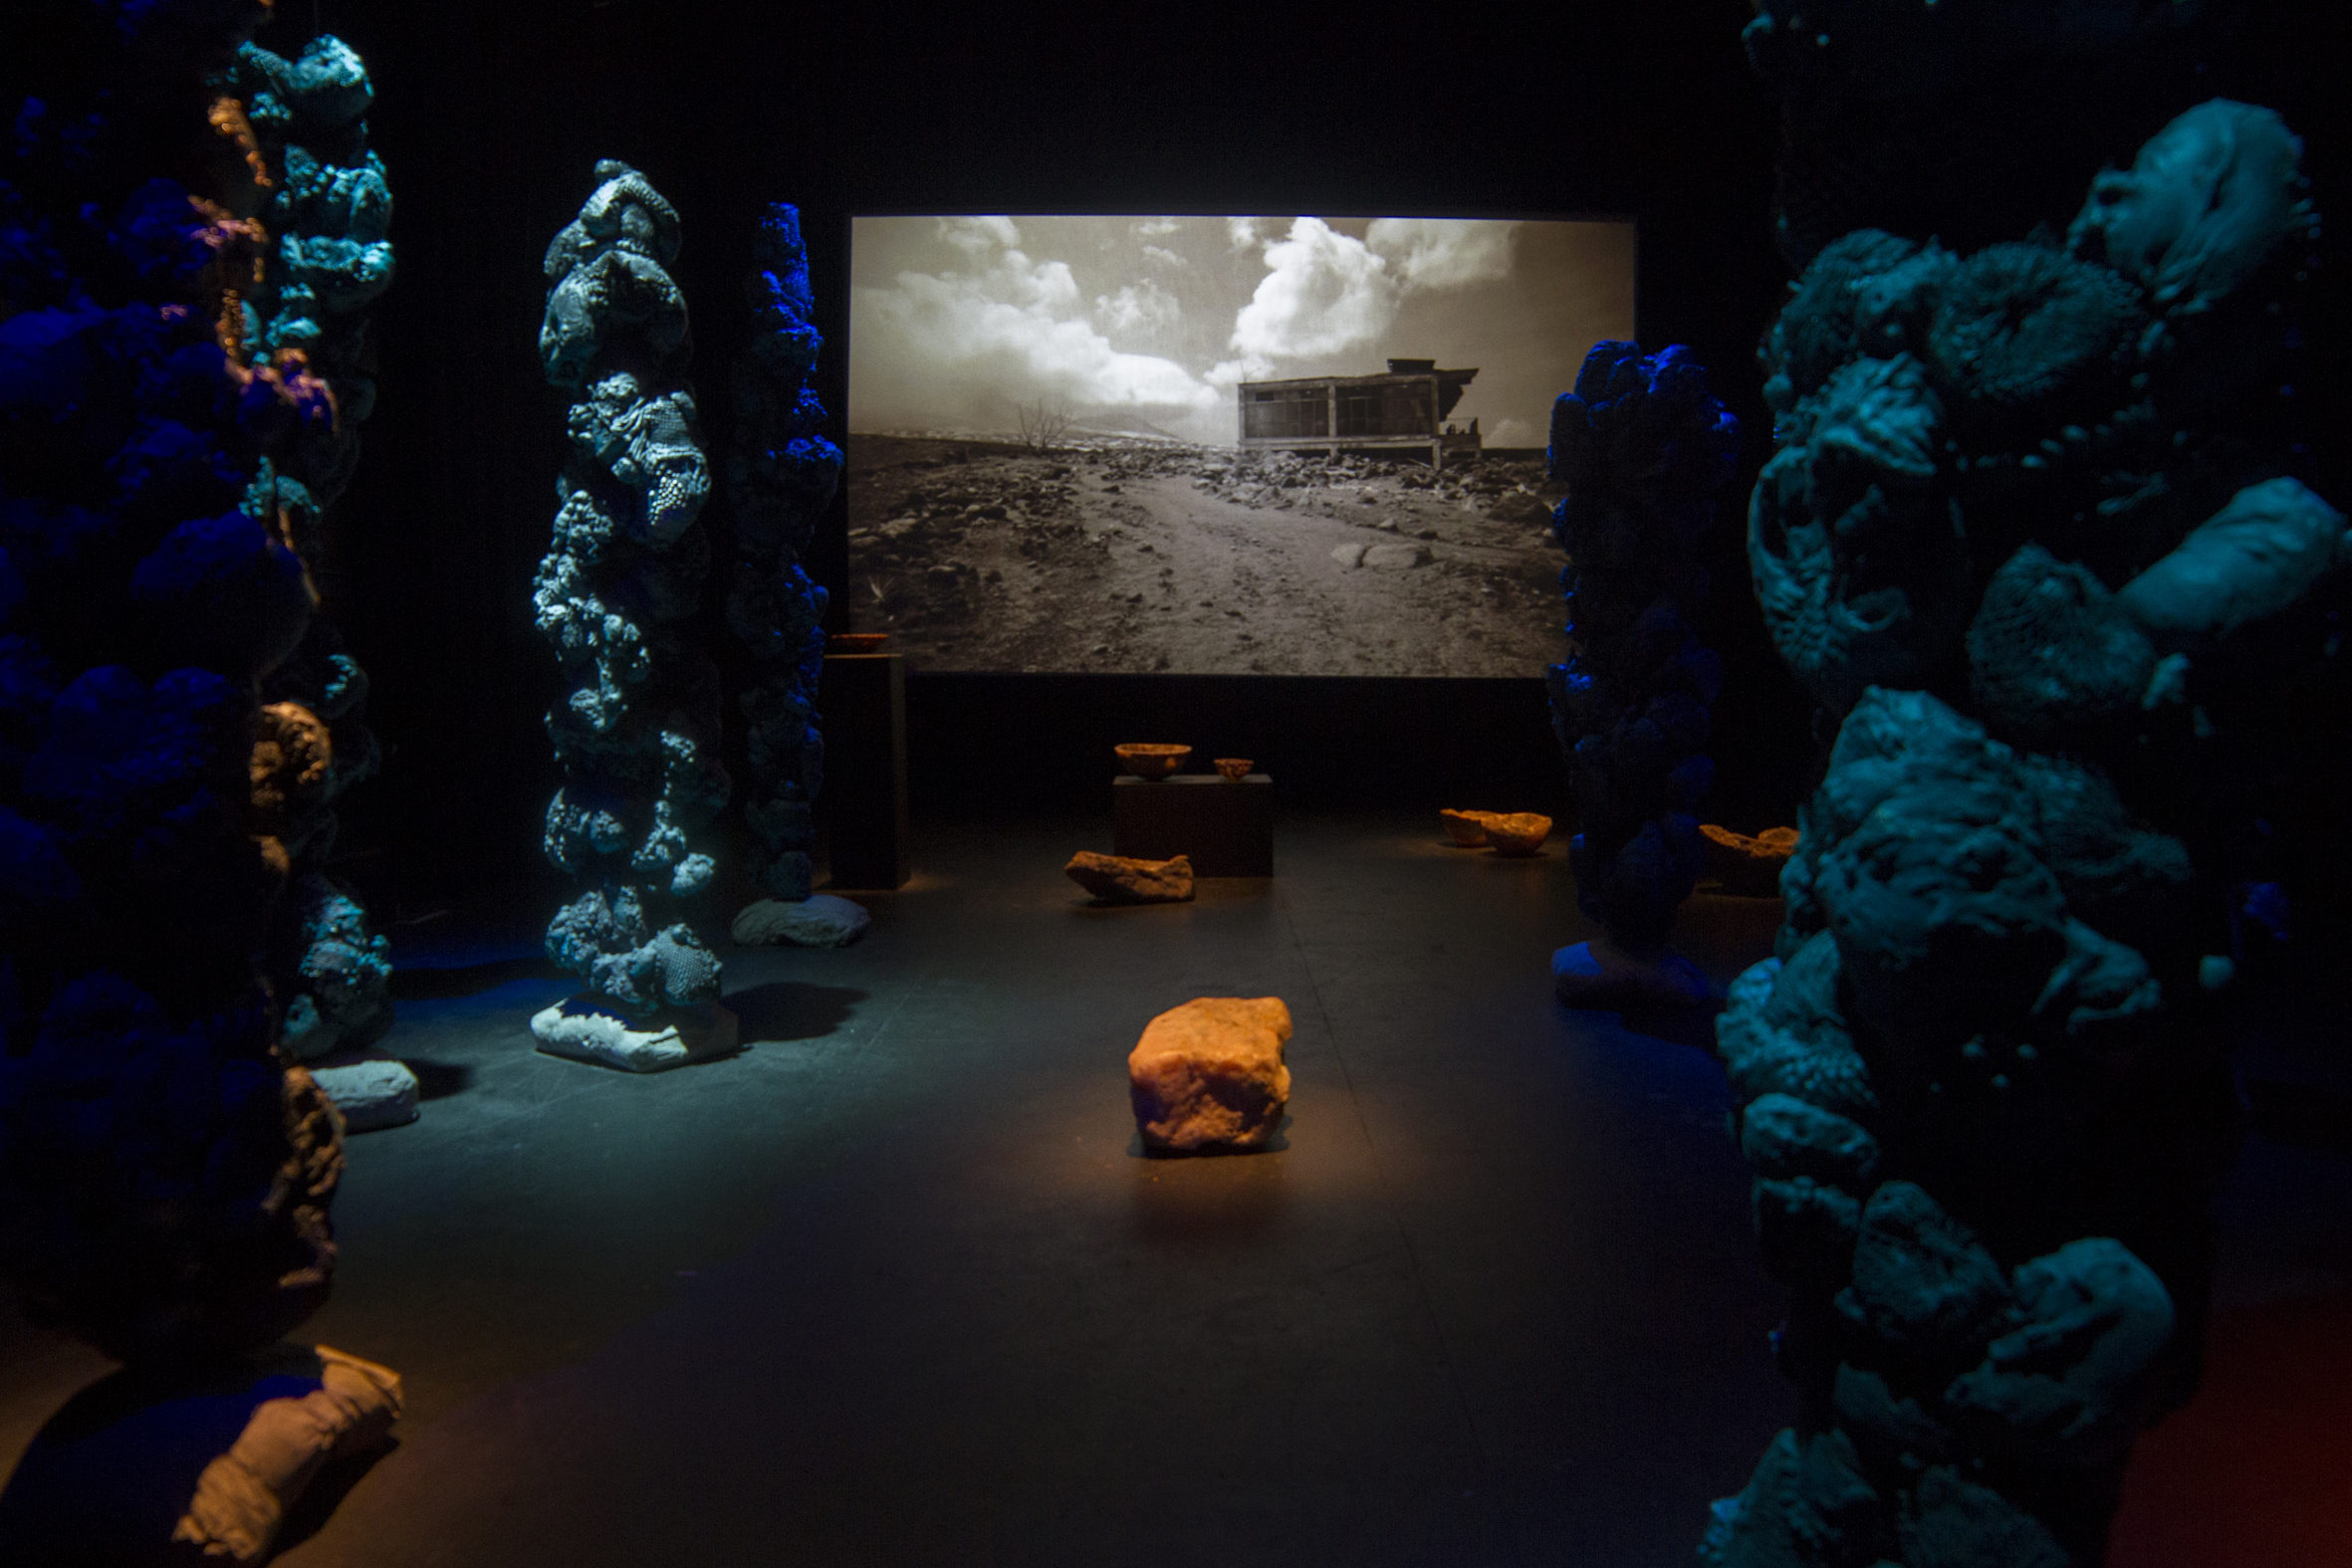 Clare Langan, Floating World, 2015, Ruth Lyons, Afterings, 2014, Maria McKinney Abyssals, 2014